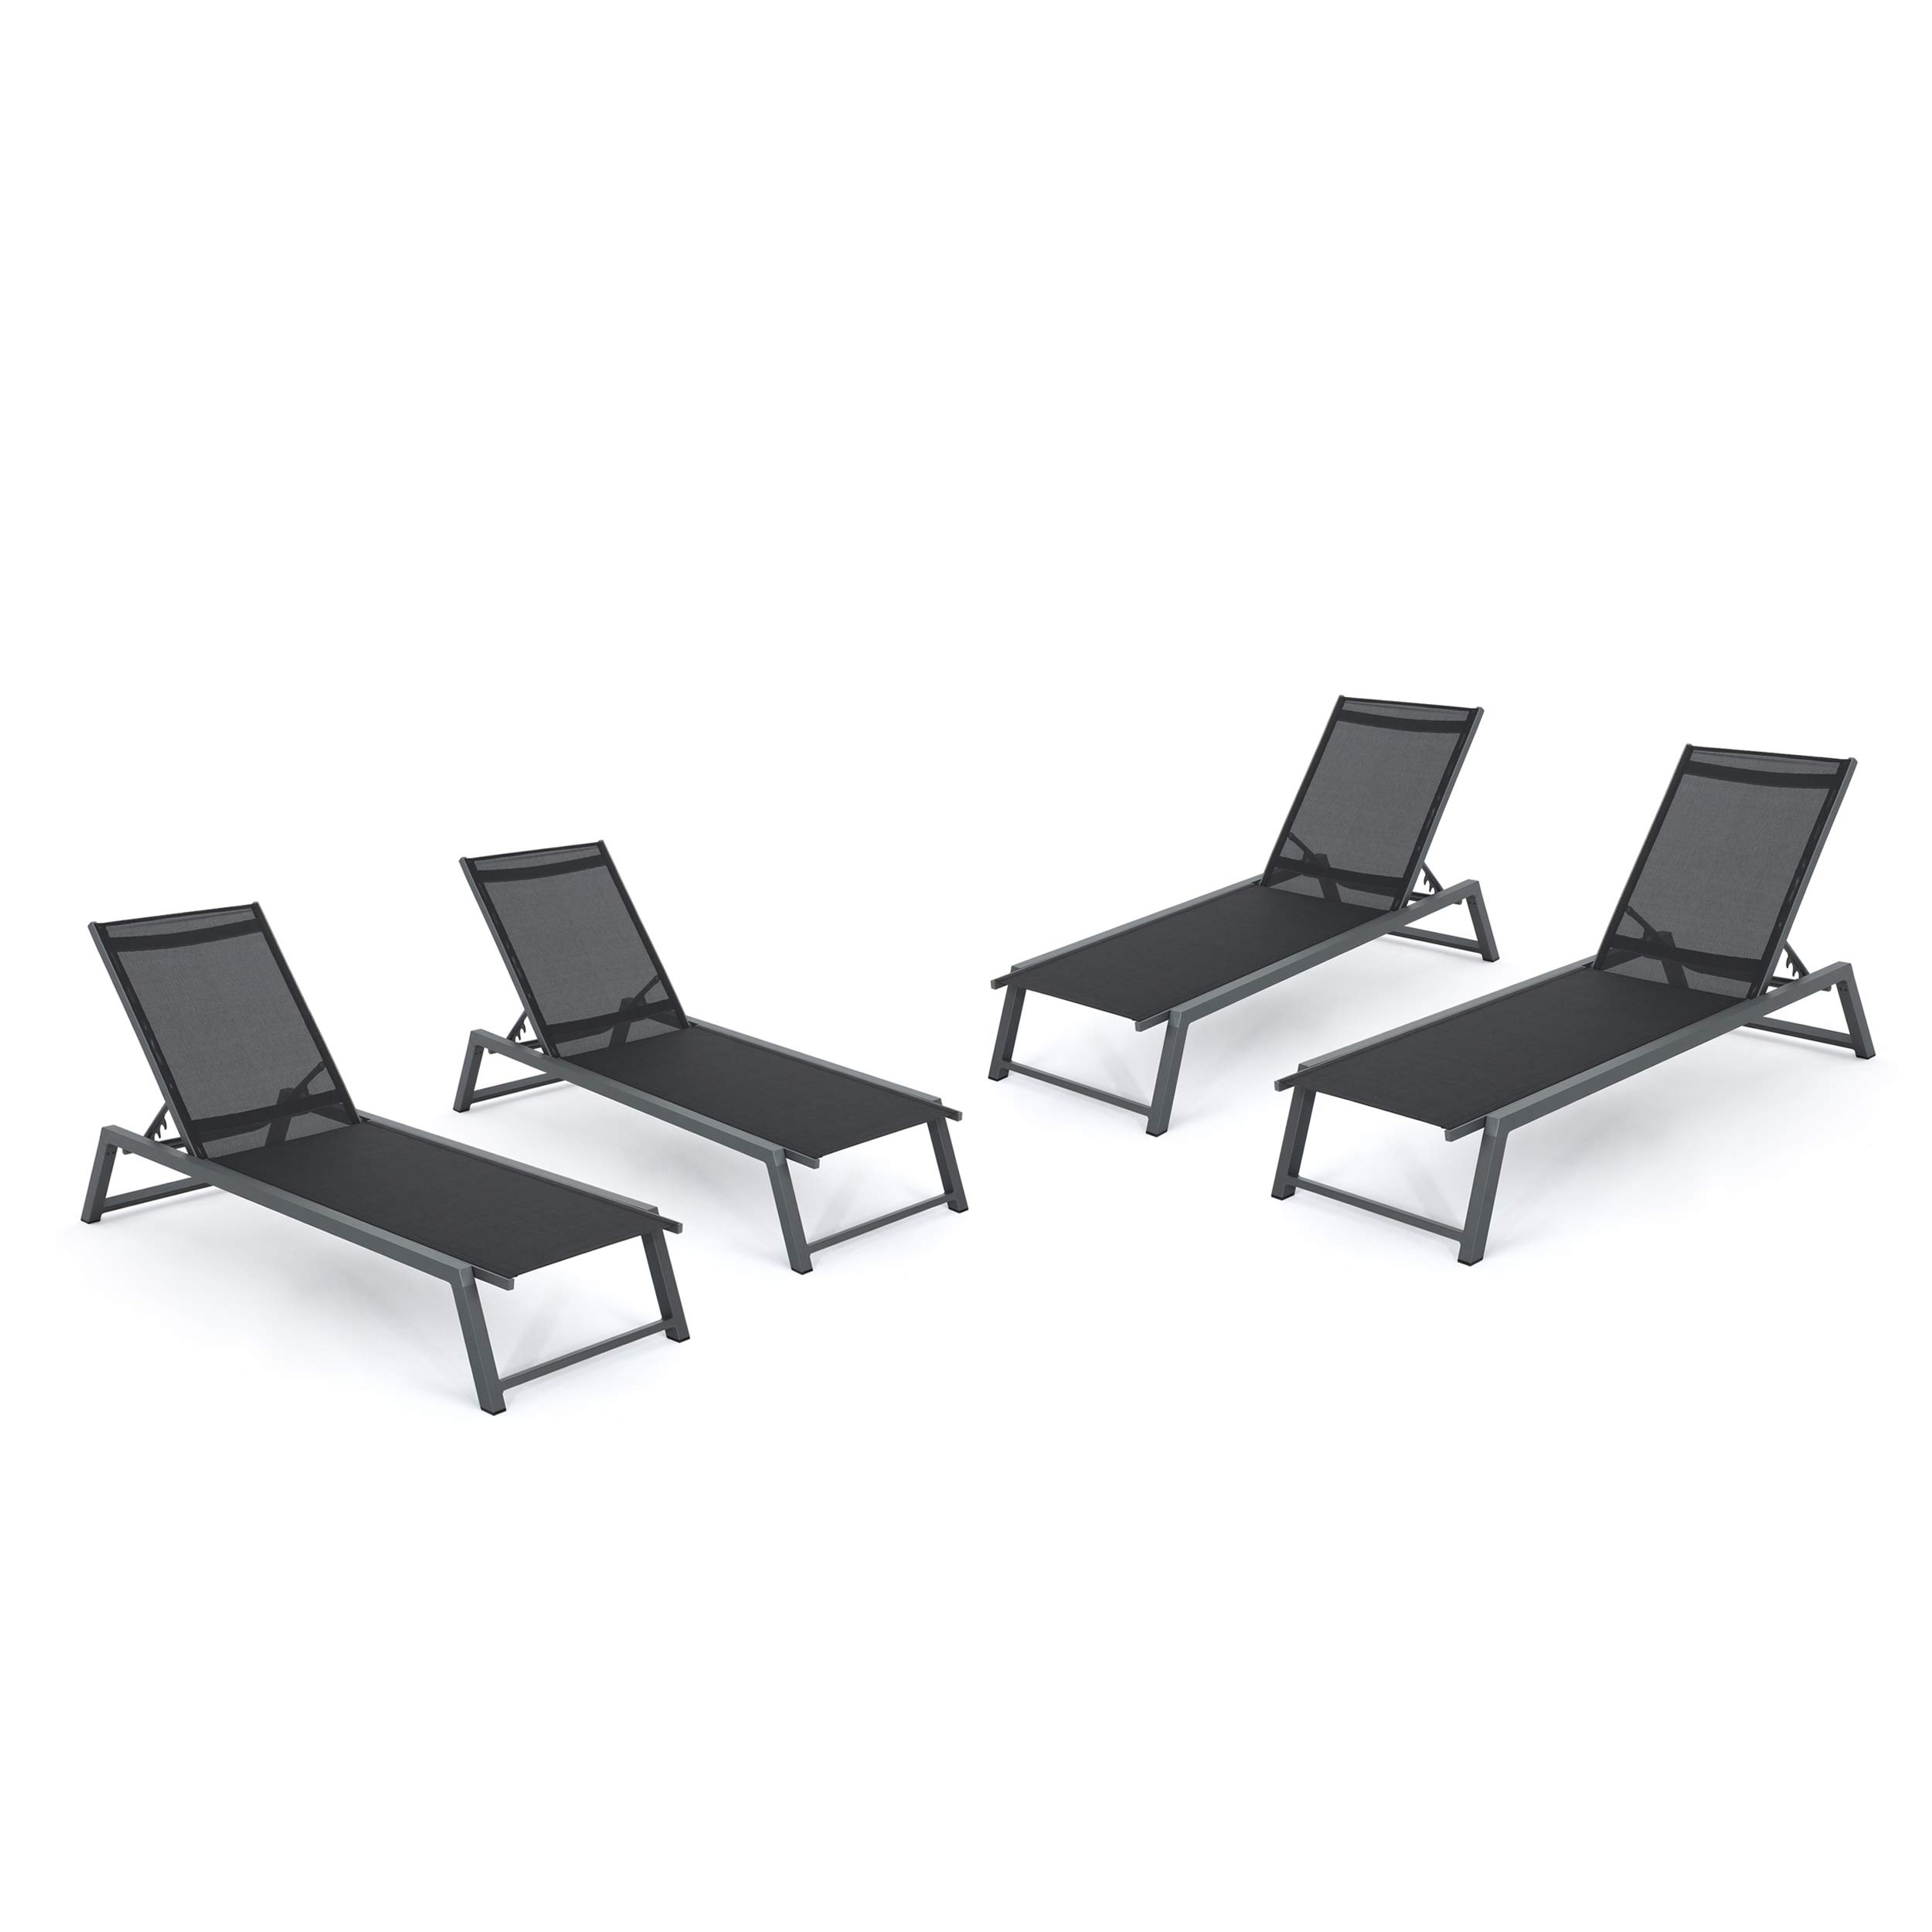 Christopher Knight Home Mesa Outdoor Black Mesh Chaise Lounge with Grey Finished Aluminum Frame (Set of 4)